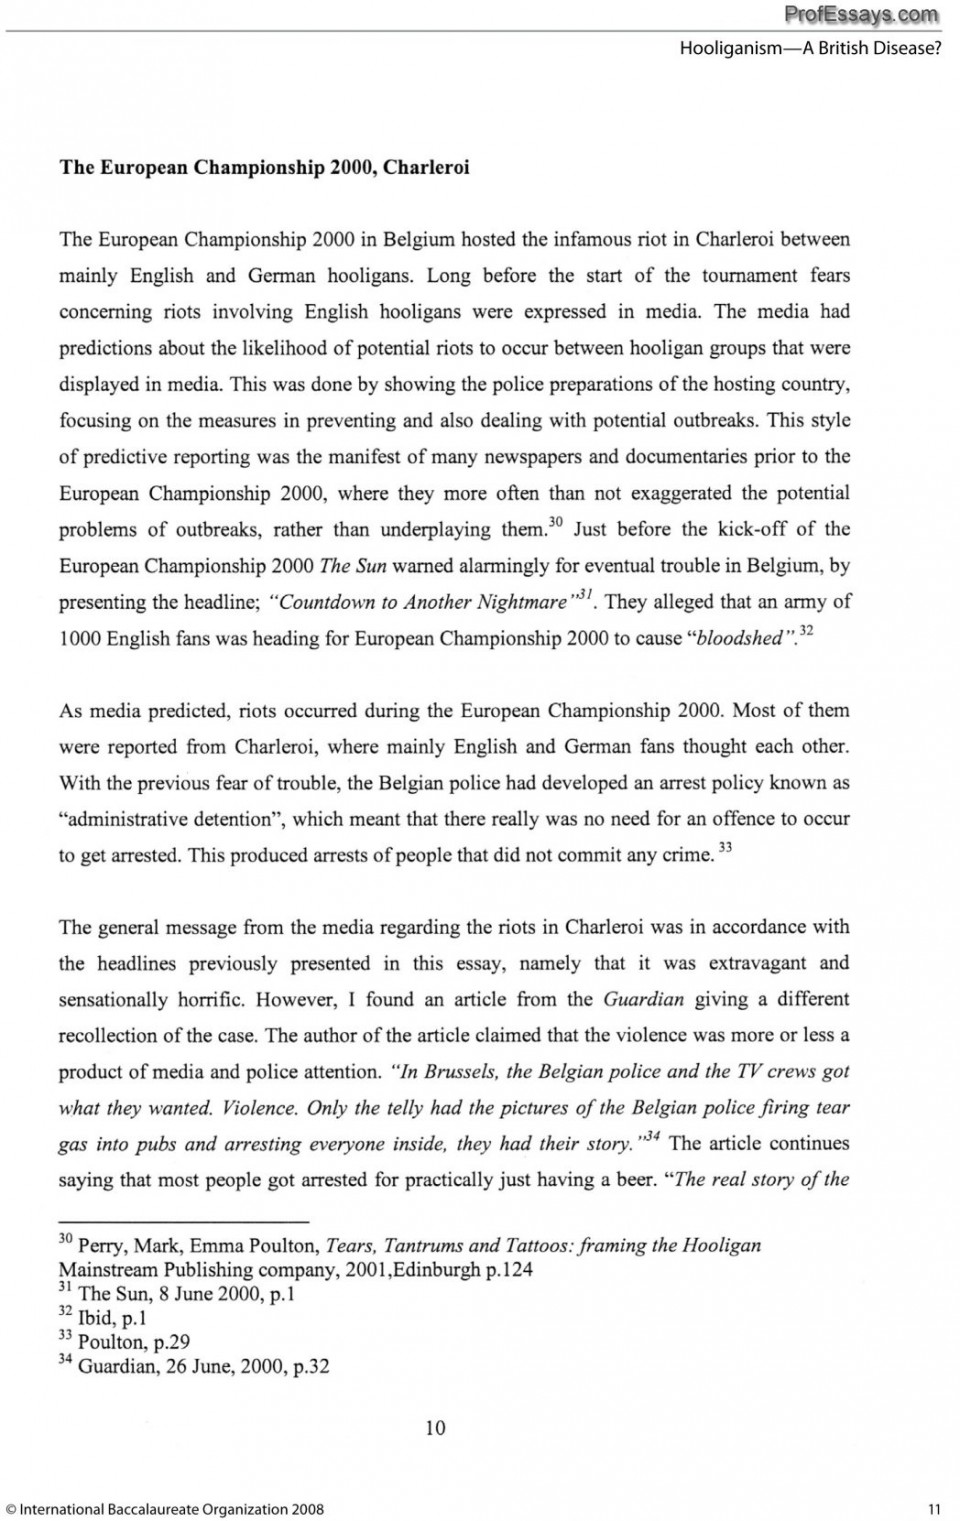 014 Essay Example Book English Importance Of Persuasive Examples Pdf Ib Extended Free S Writing Argumentative Opinion Process Sat Exemplification Narrative Classification 1048x1661 Impressive Report Sample Literary 960